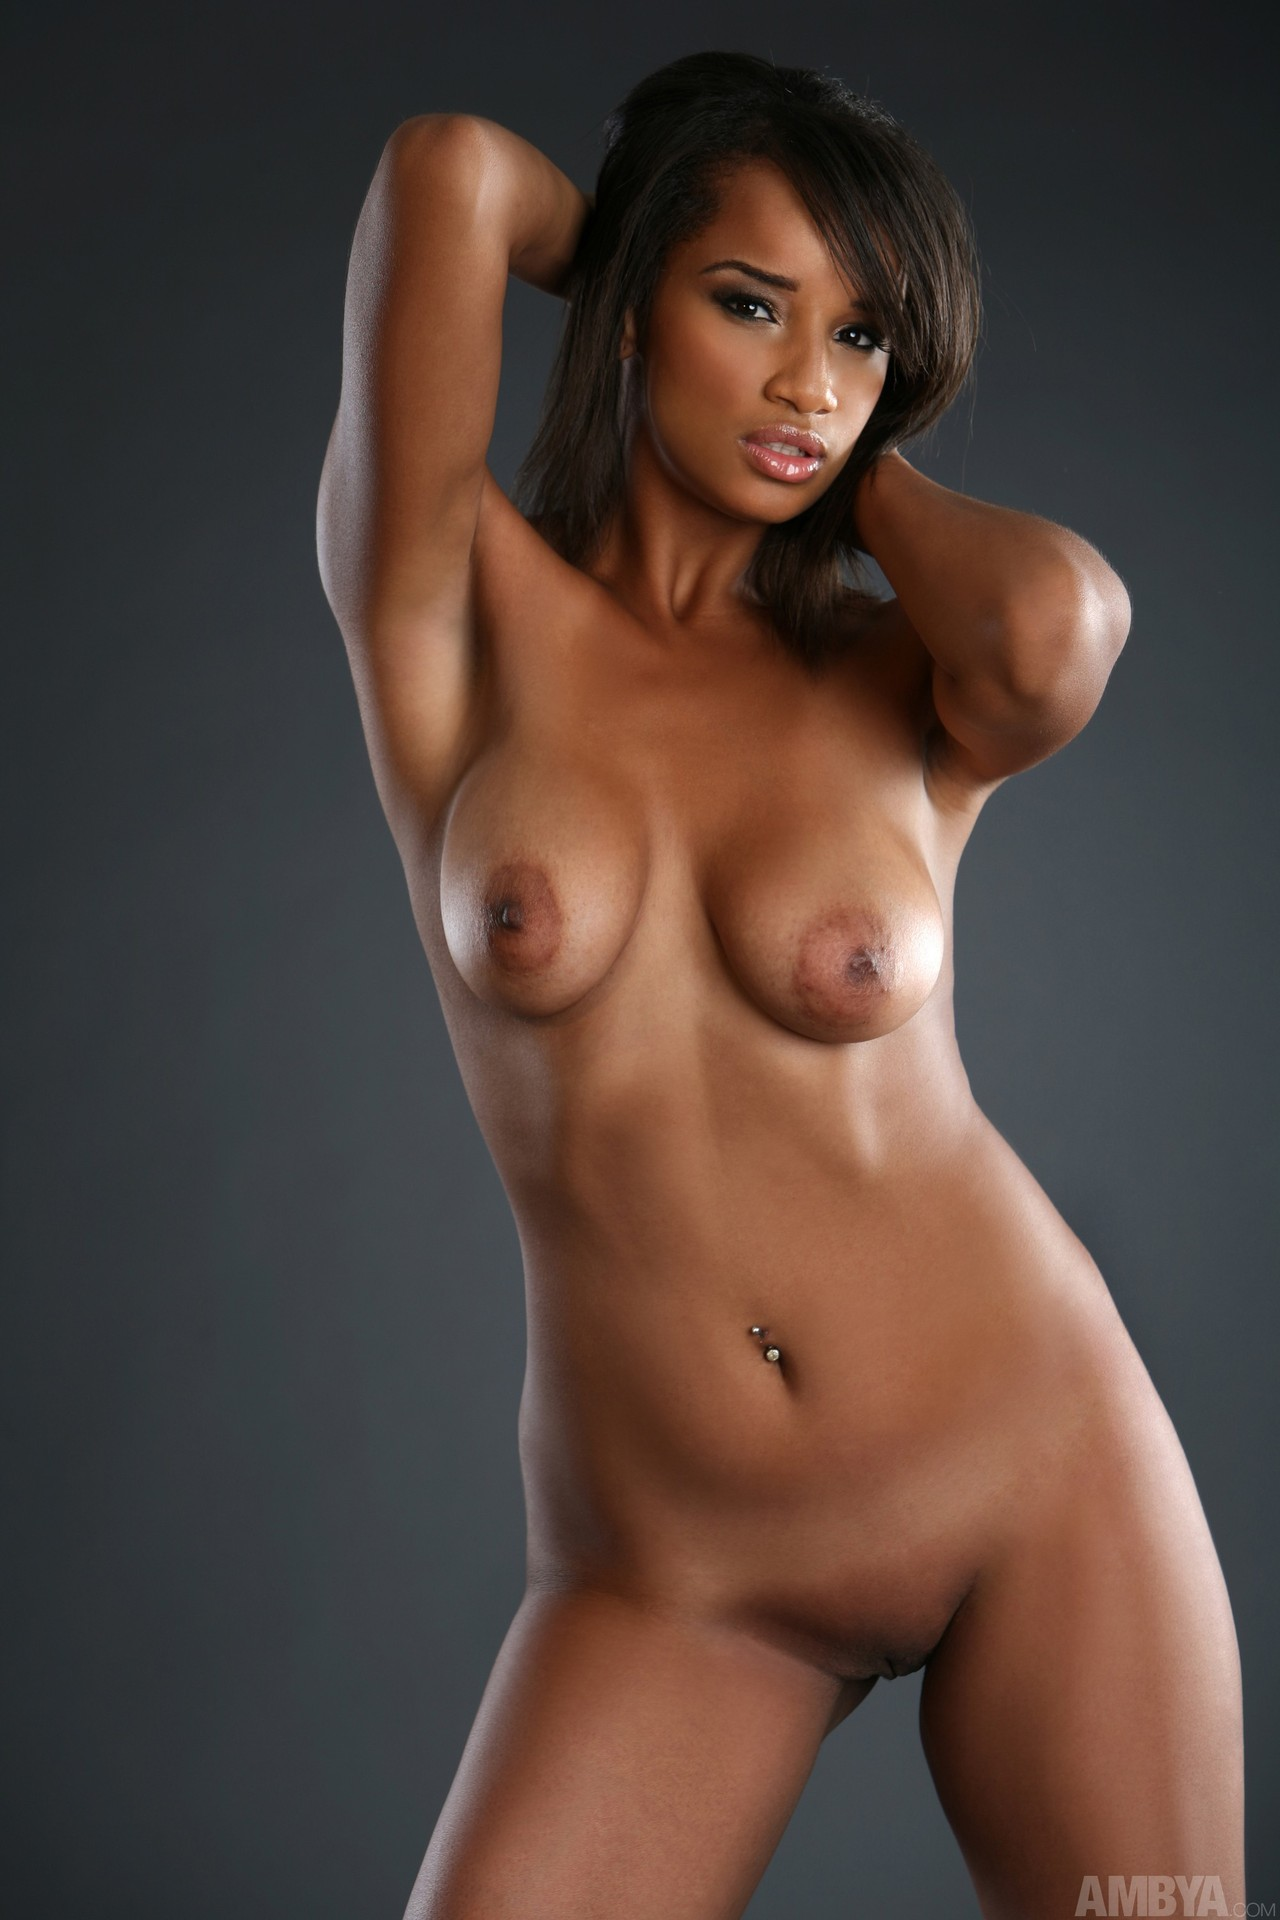 Ass hot sexy naked black girls nude agree, excellent